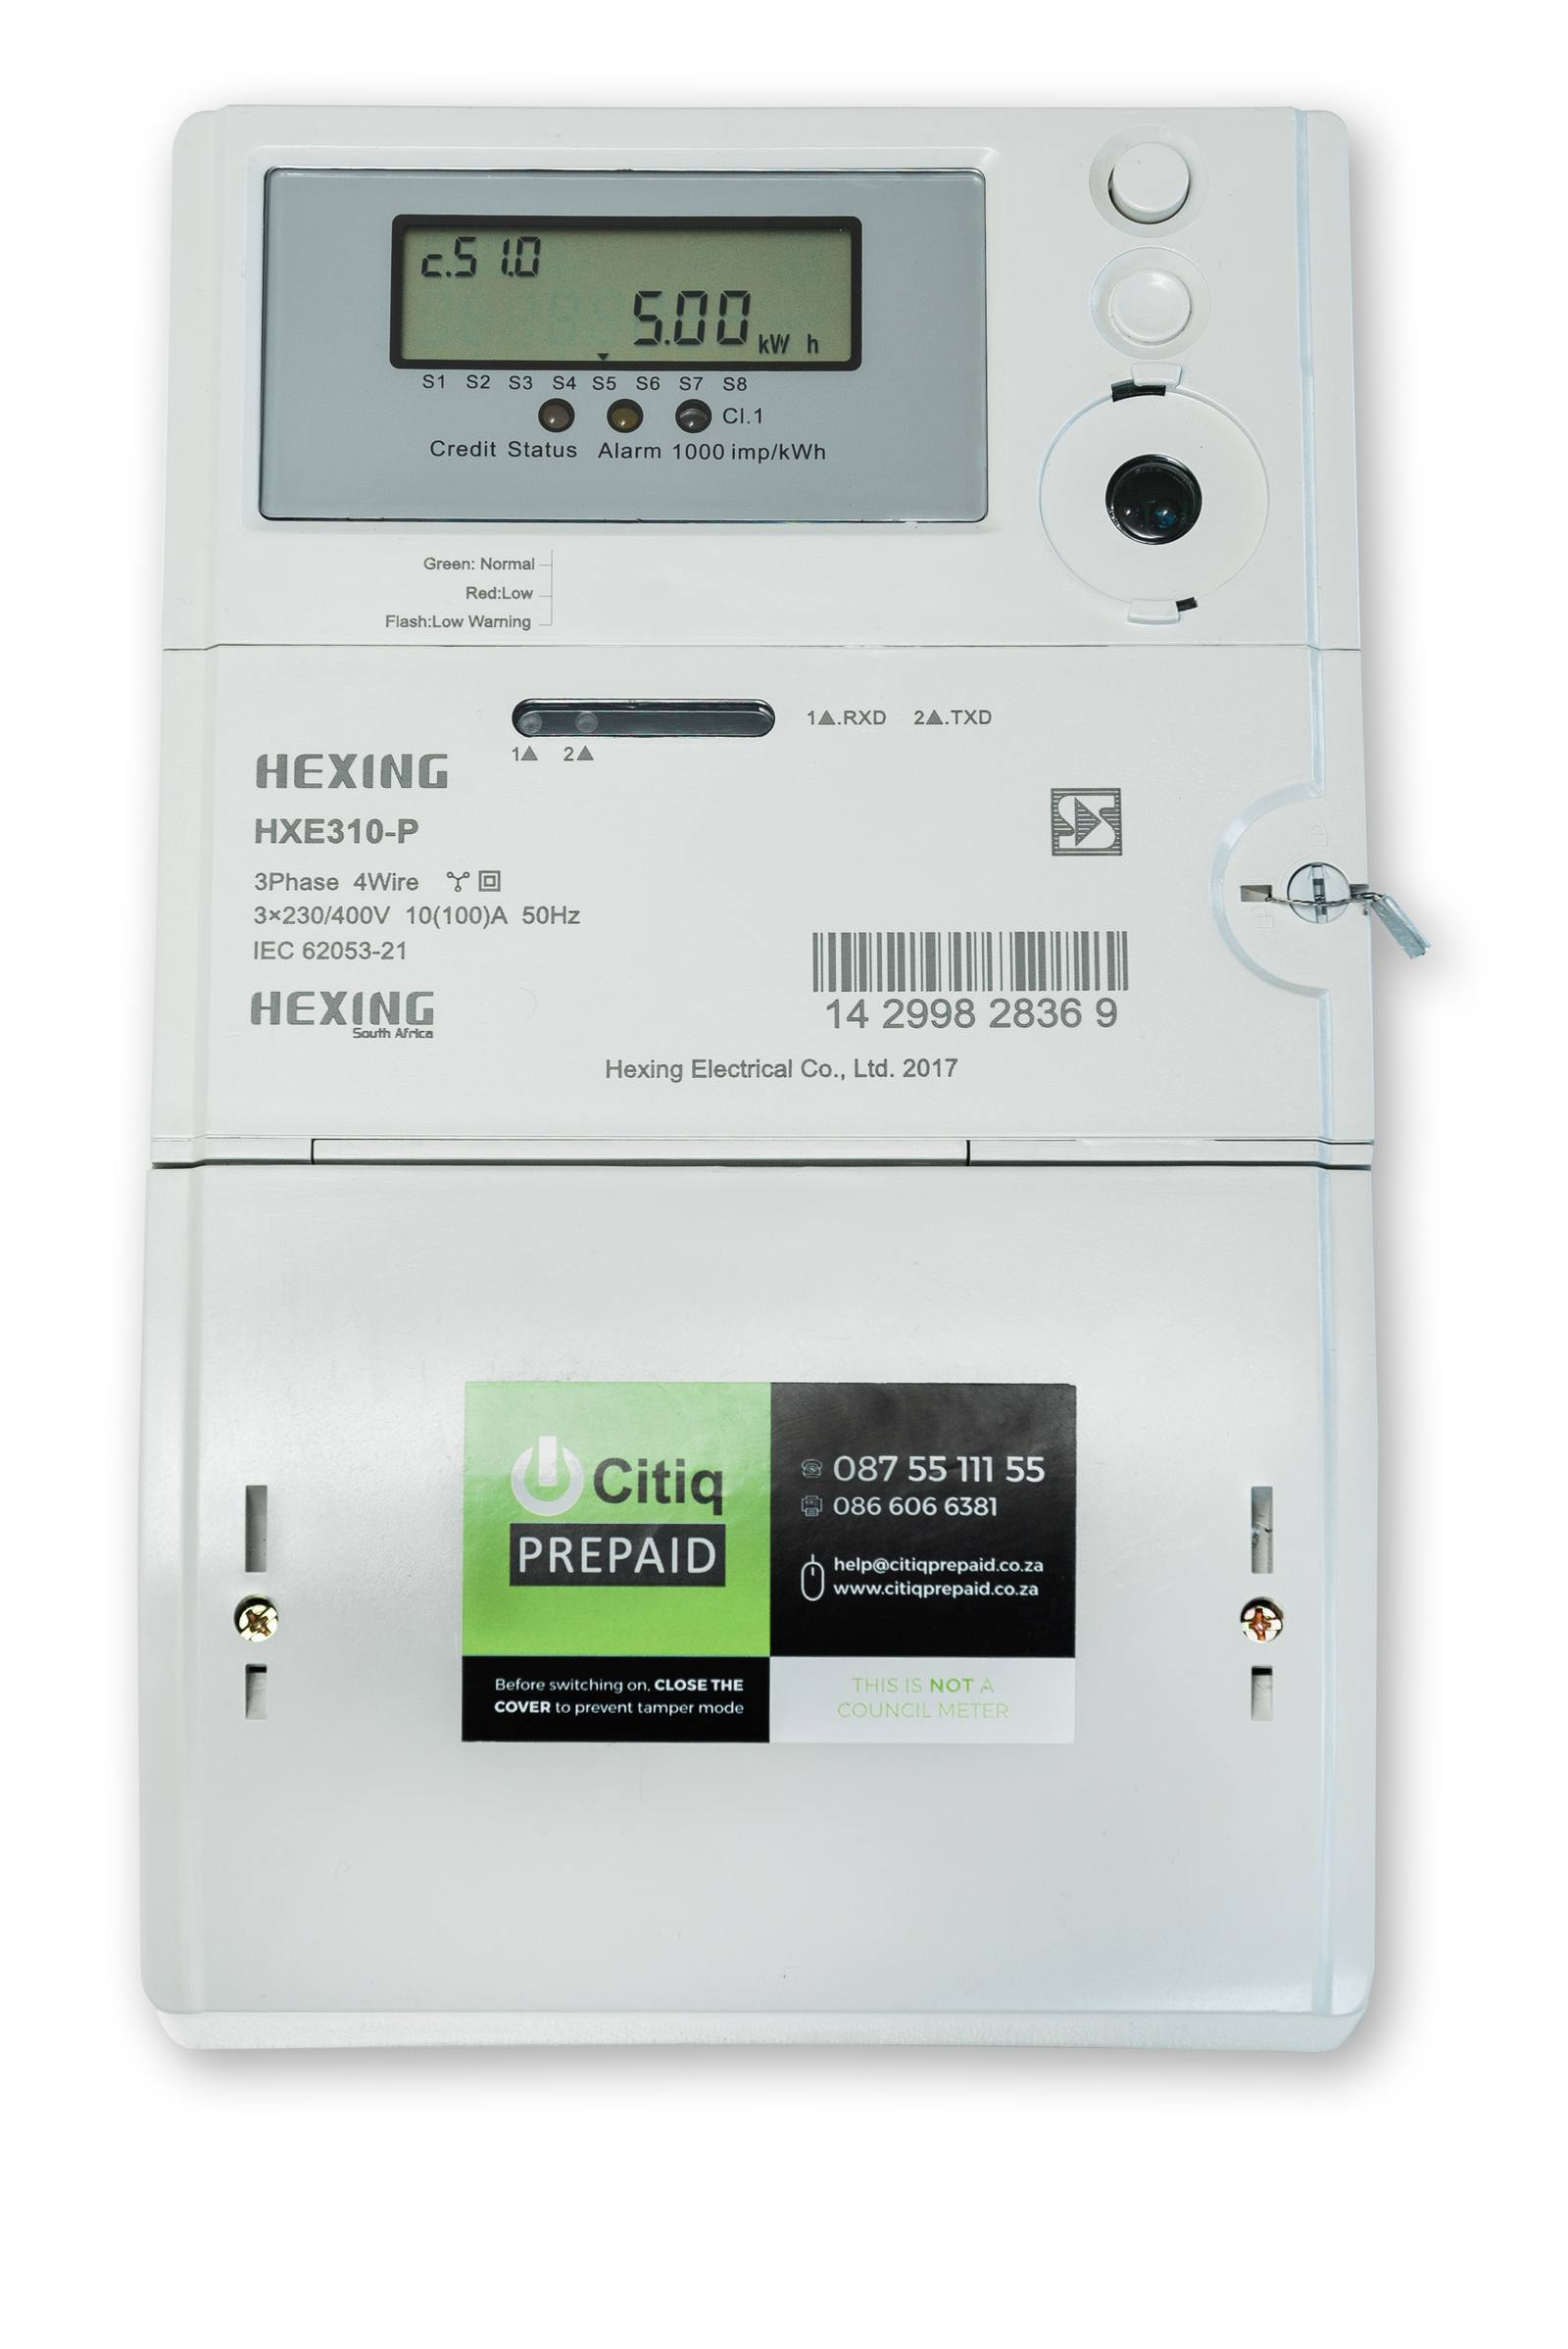 hight resolution of hexing three phase plc hxe 310 p split electricity meter hxe310 p is a three phase direct connection